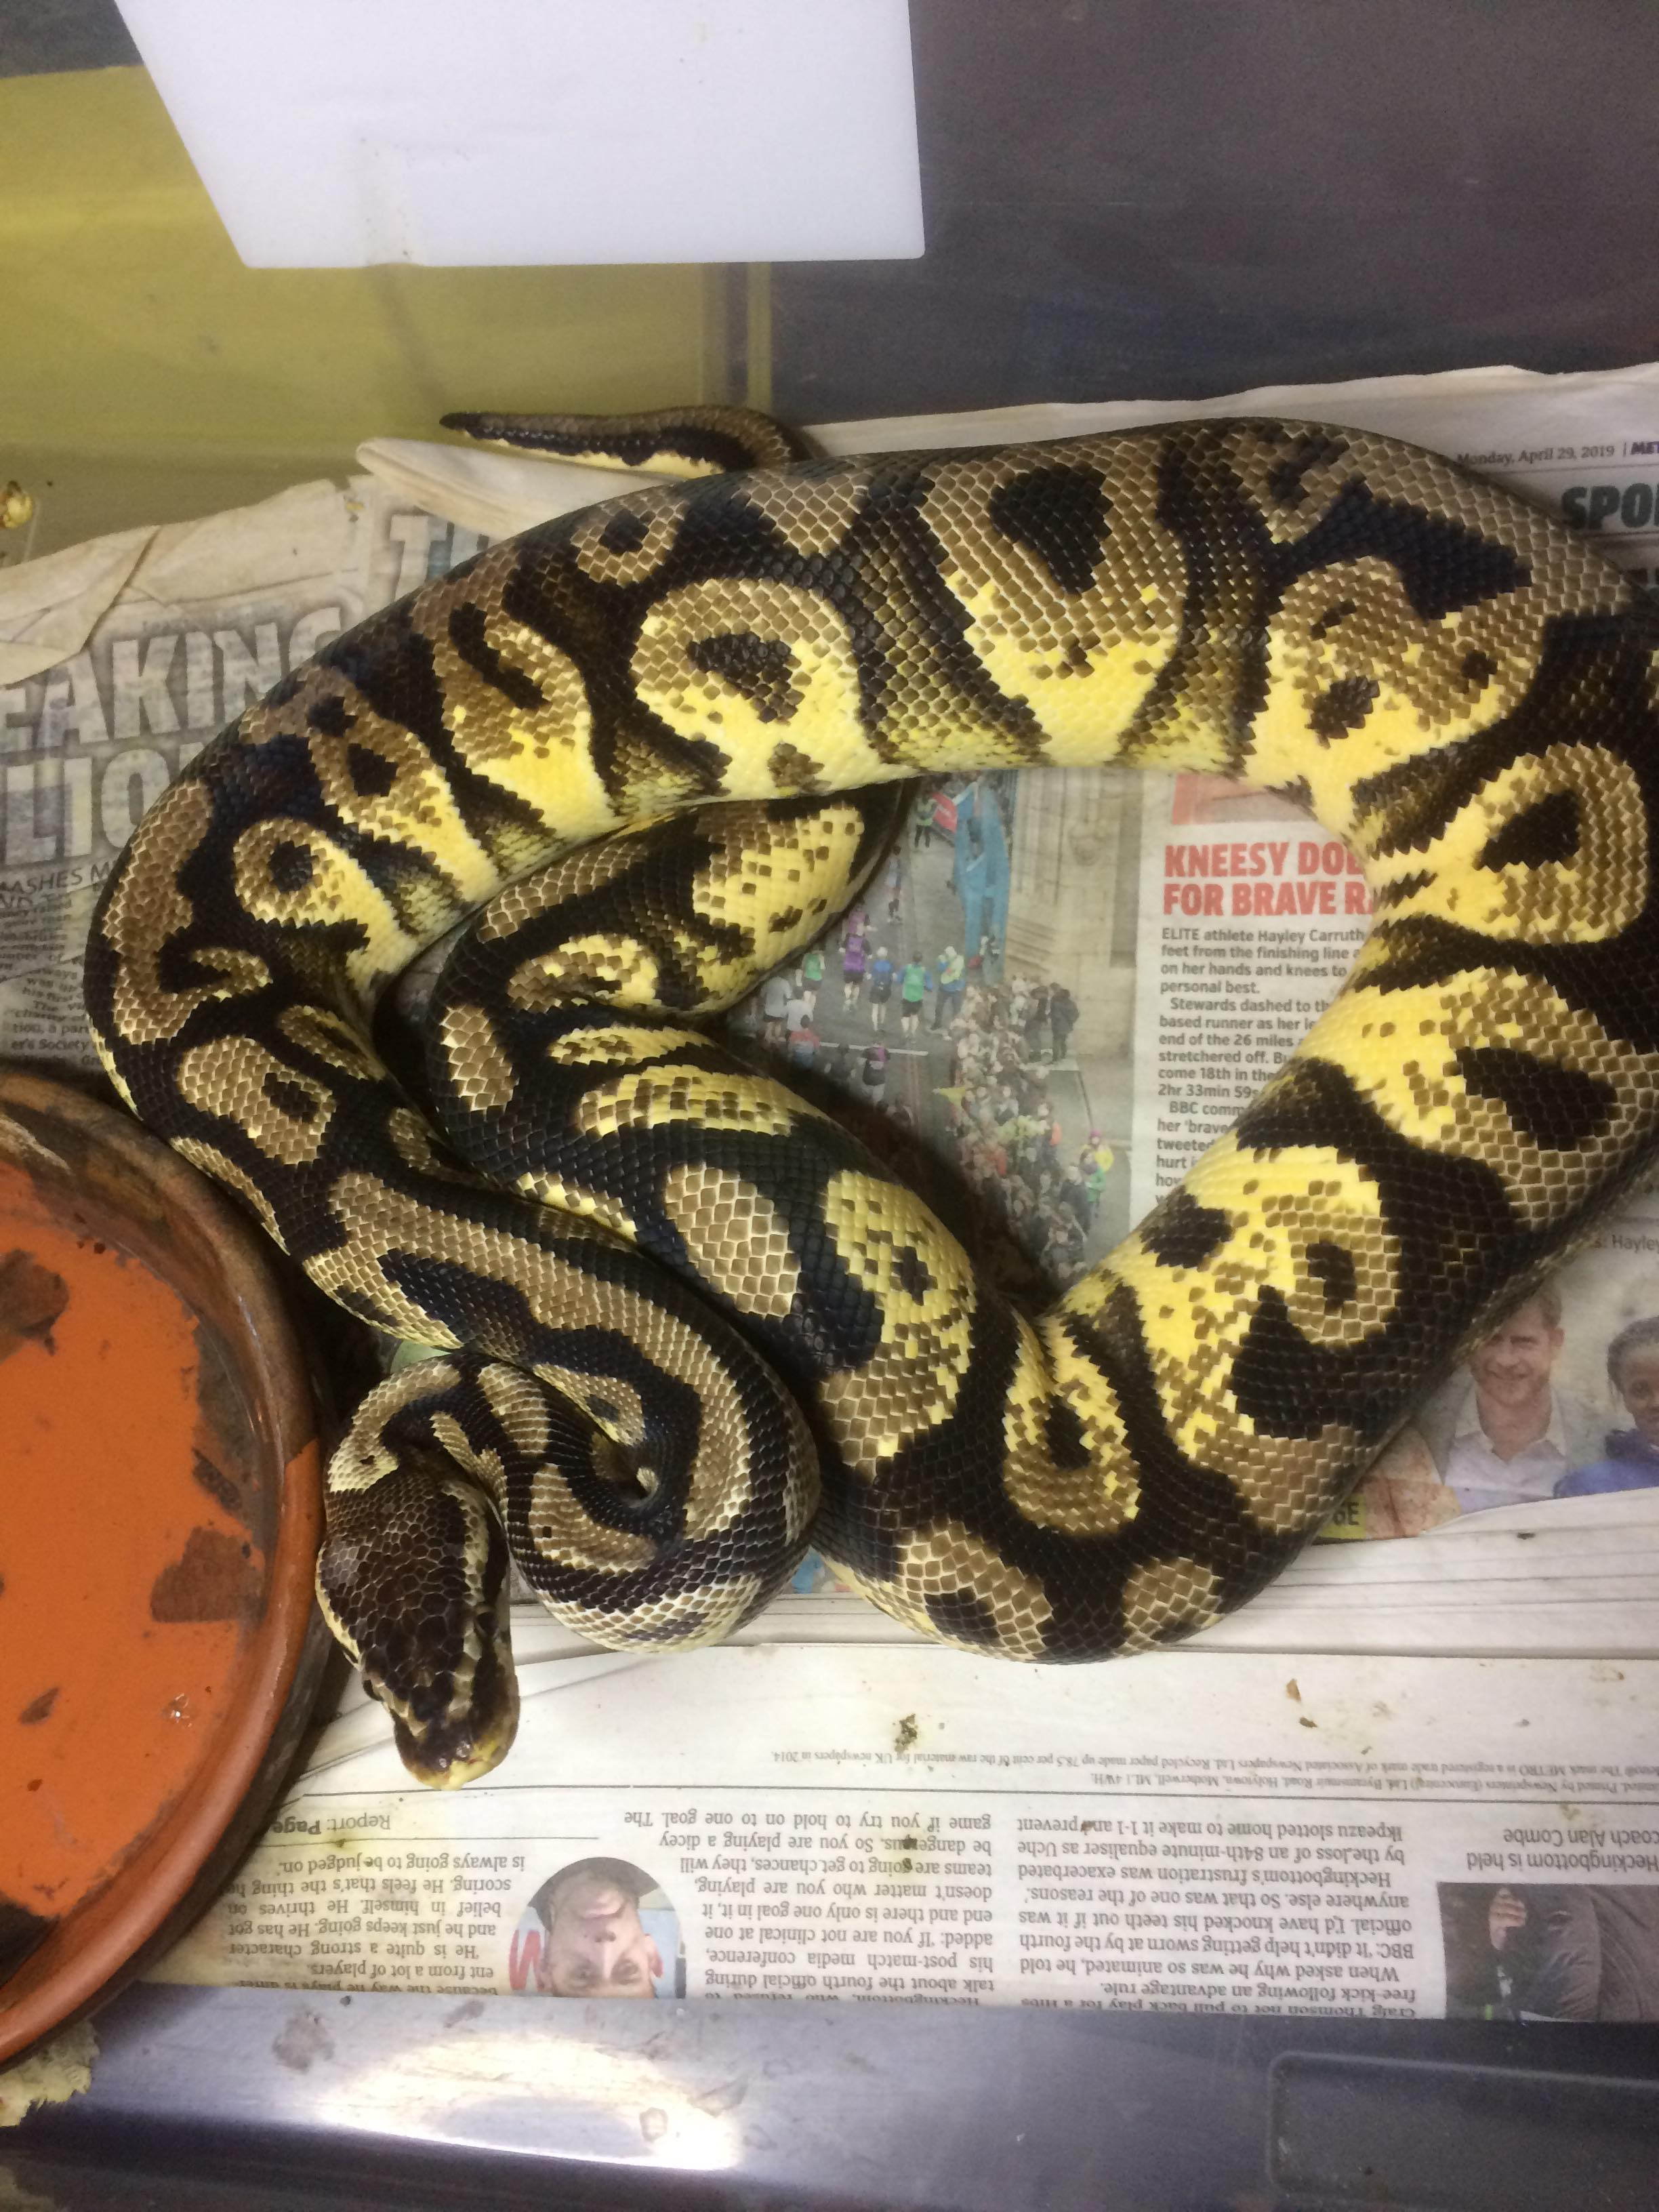 Various male and female royals for sale-67096109_741594862960299_8227094689682030592_n.jpg